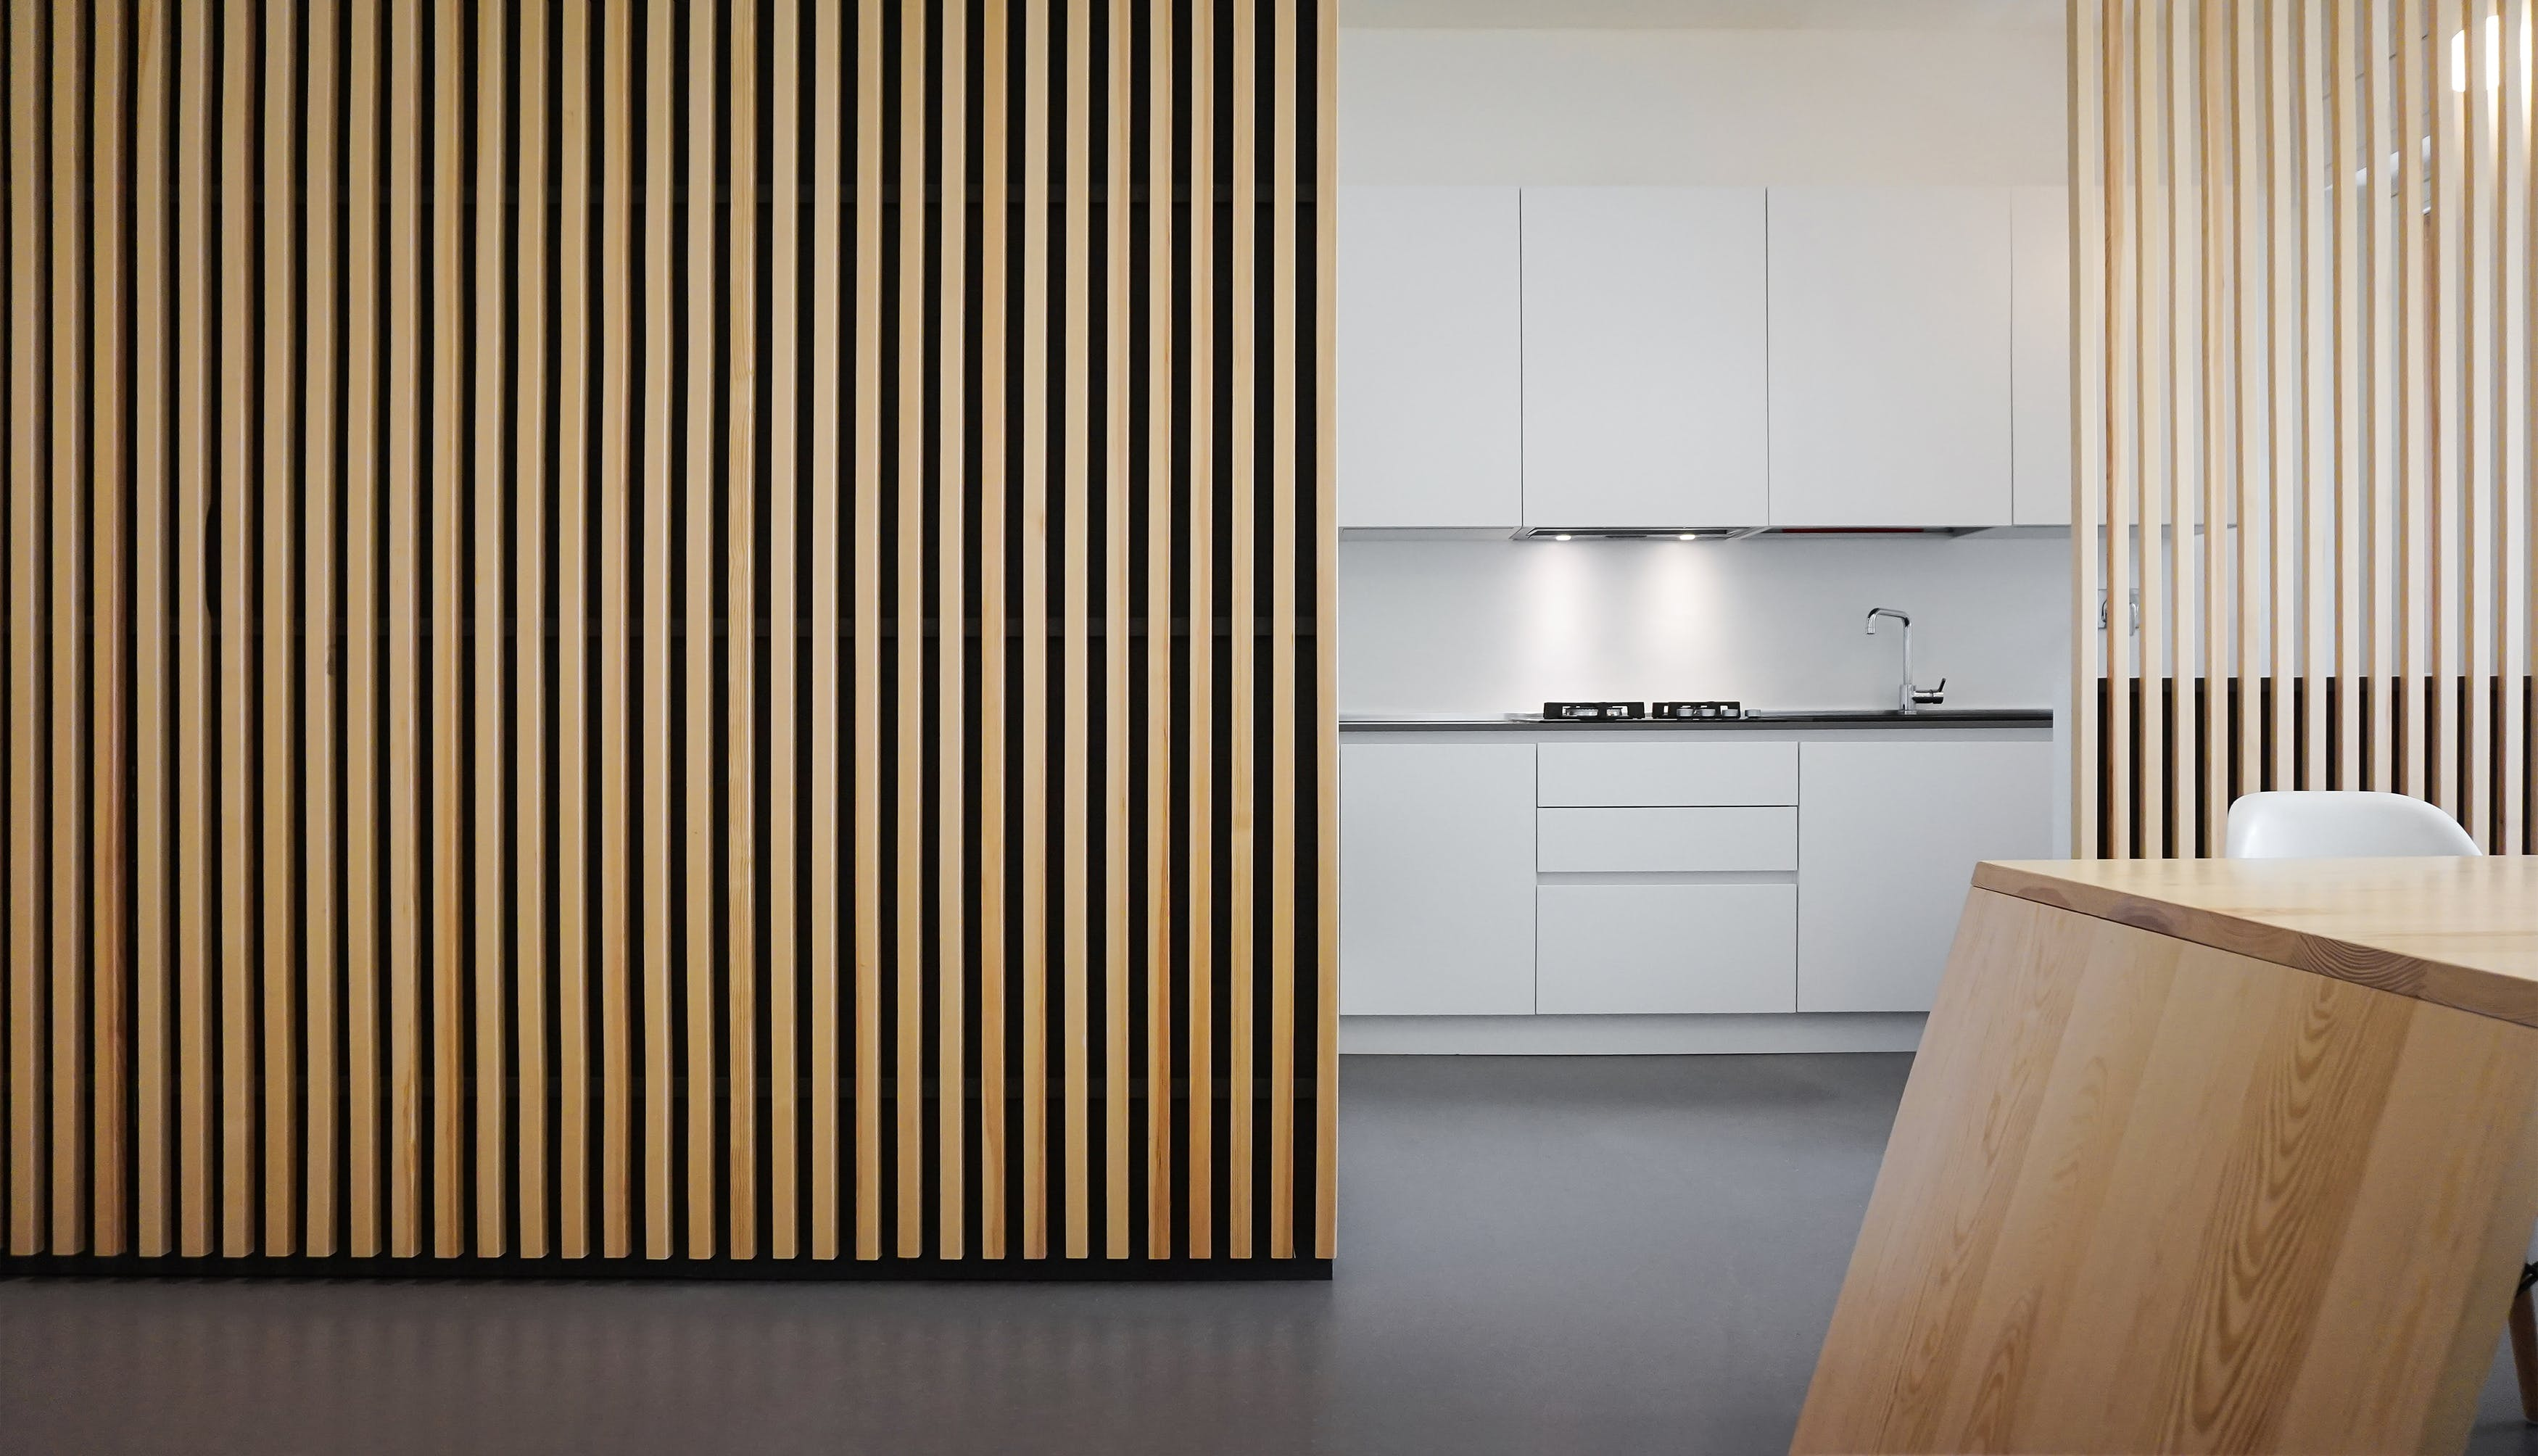 Vertical Wood Slat Wall Renovation In Turin Leibal